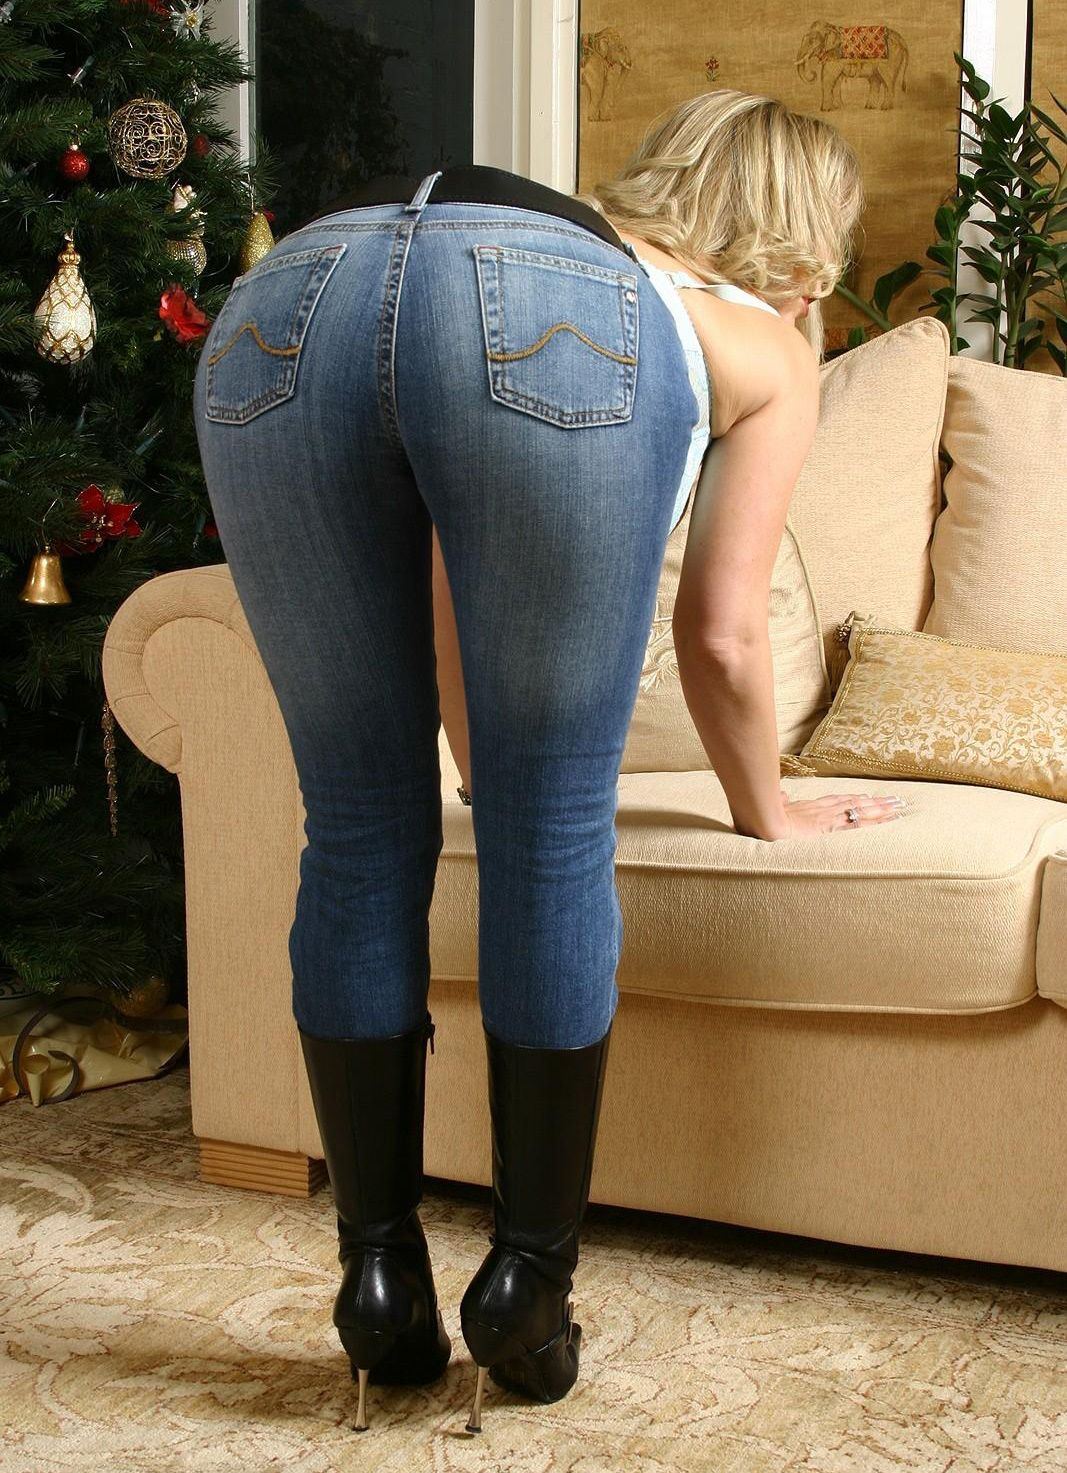 jeans Porn bending over women